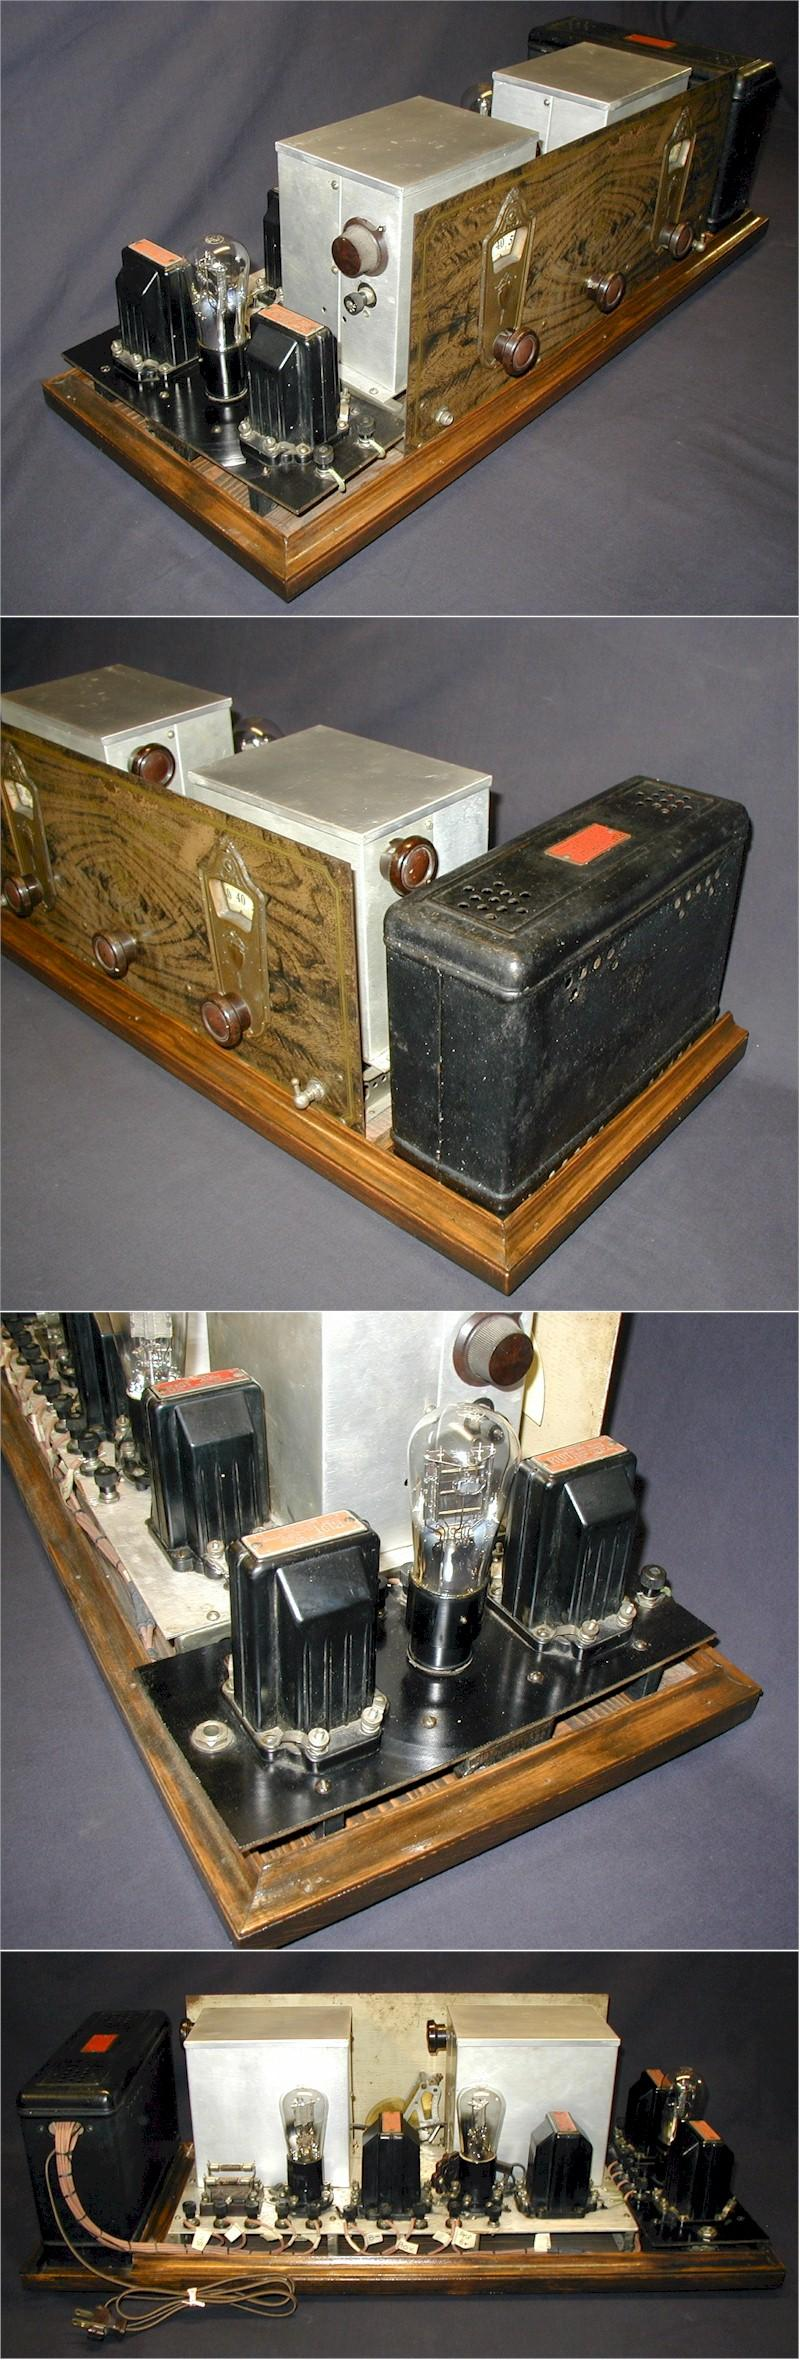 Pilot AC Super-Wasp K-115 with Amplifier & Power Supply (1928)